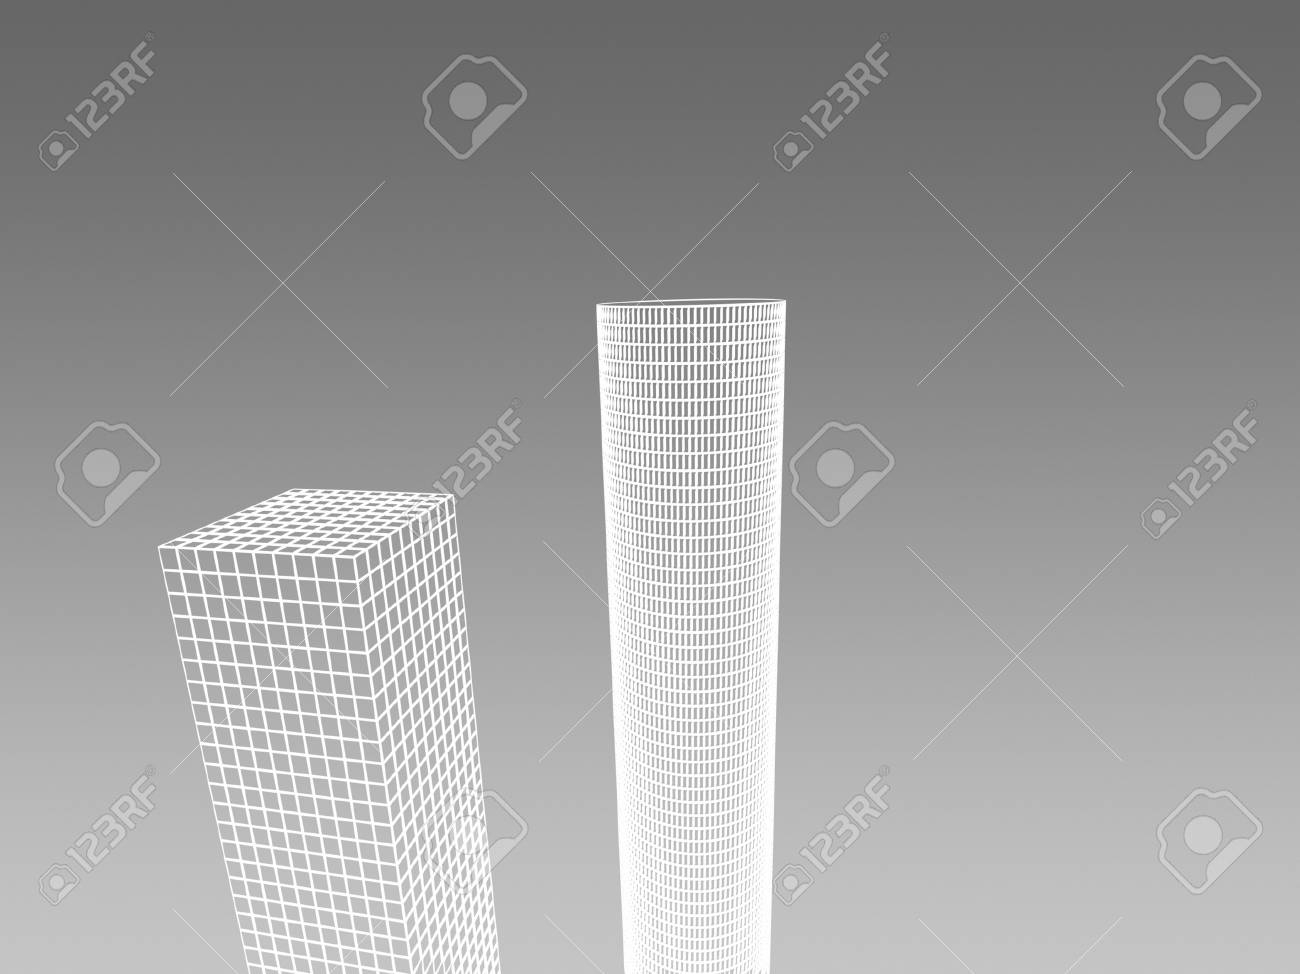 Abstract architectural 3D construction. Concept - modern architecture and designing. Stock Photo - 16910721